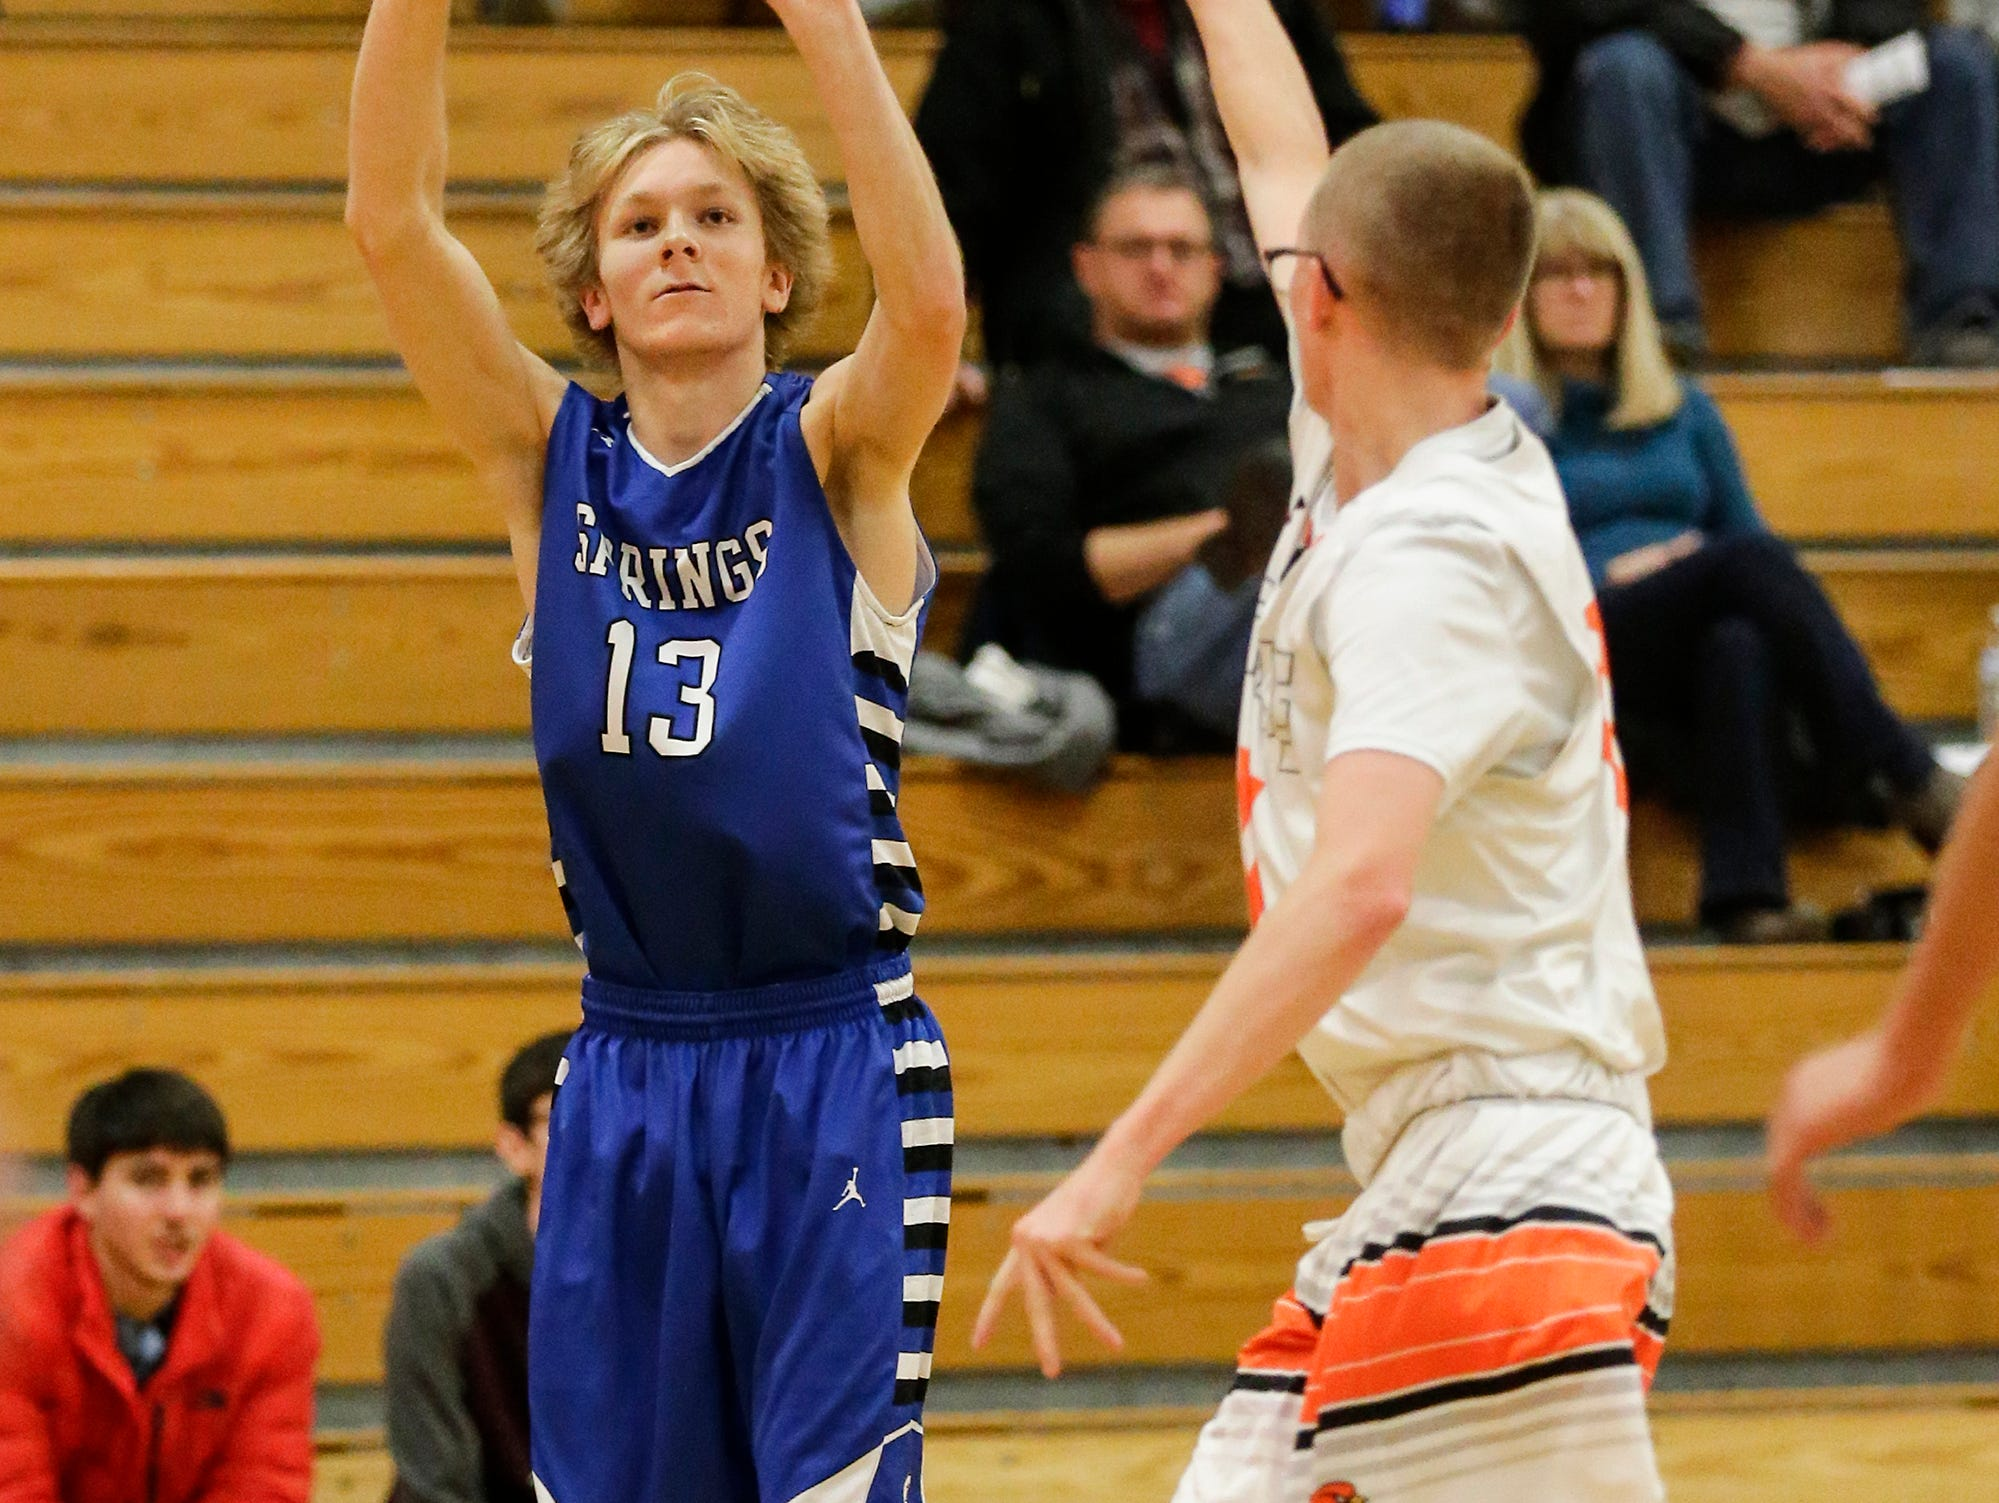 St. Mary's Springs Academy's boys basketball's Myles Ottery makes this three pointer over North Fond du Lac High School's Dillon Holbus during their game Friday, December 7, 2018 in North Fond du Lac, Wisconsin. Doug Raflik/USA TODAY NETWORK-Wisconsin